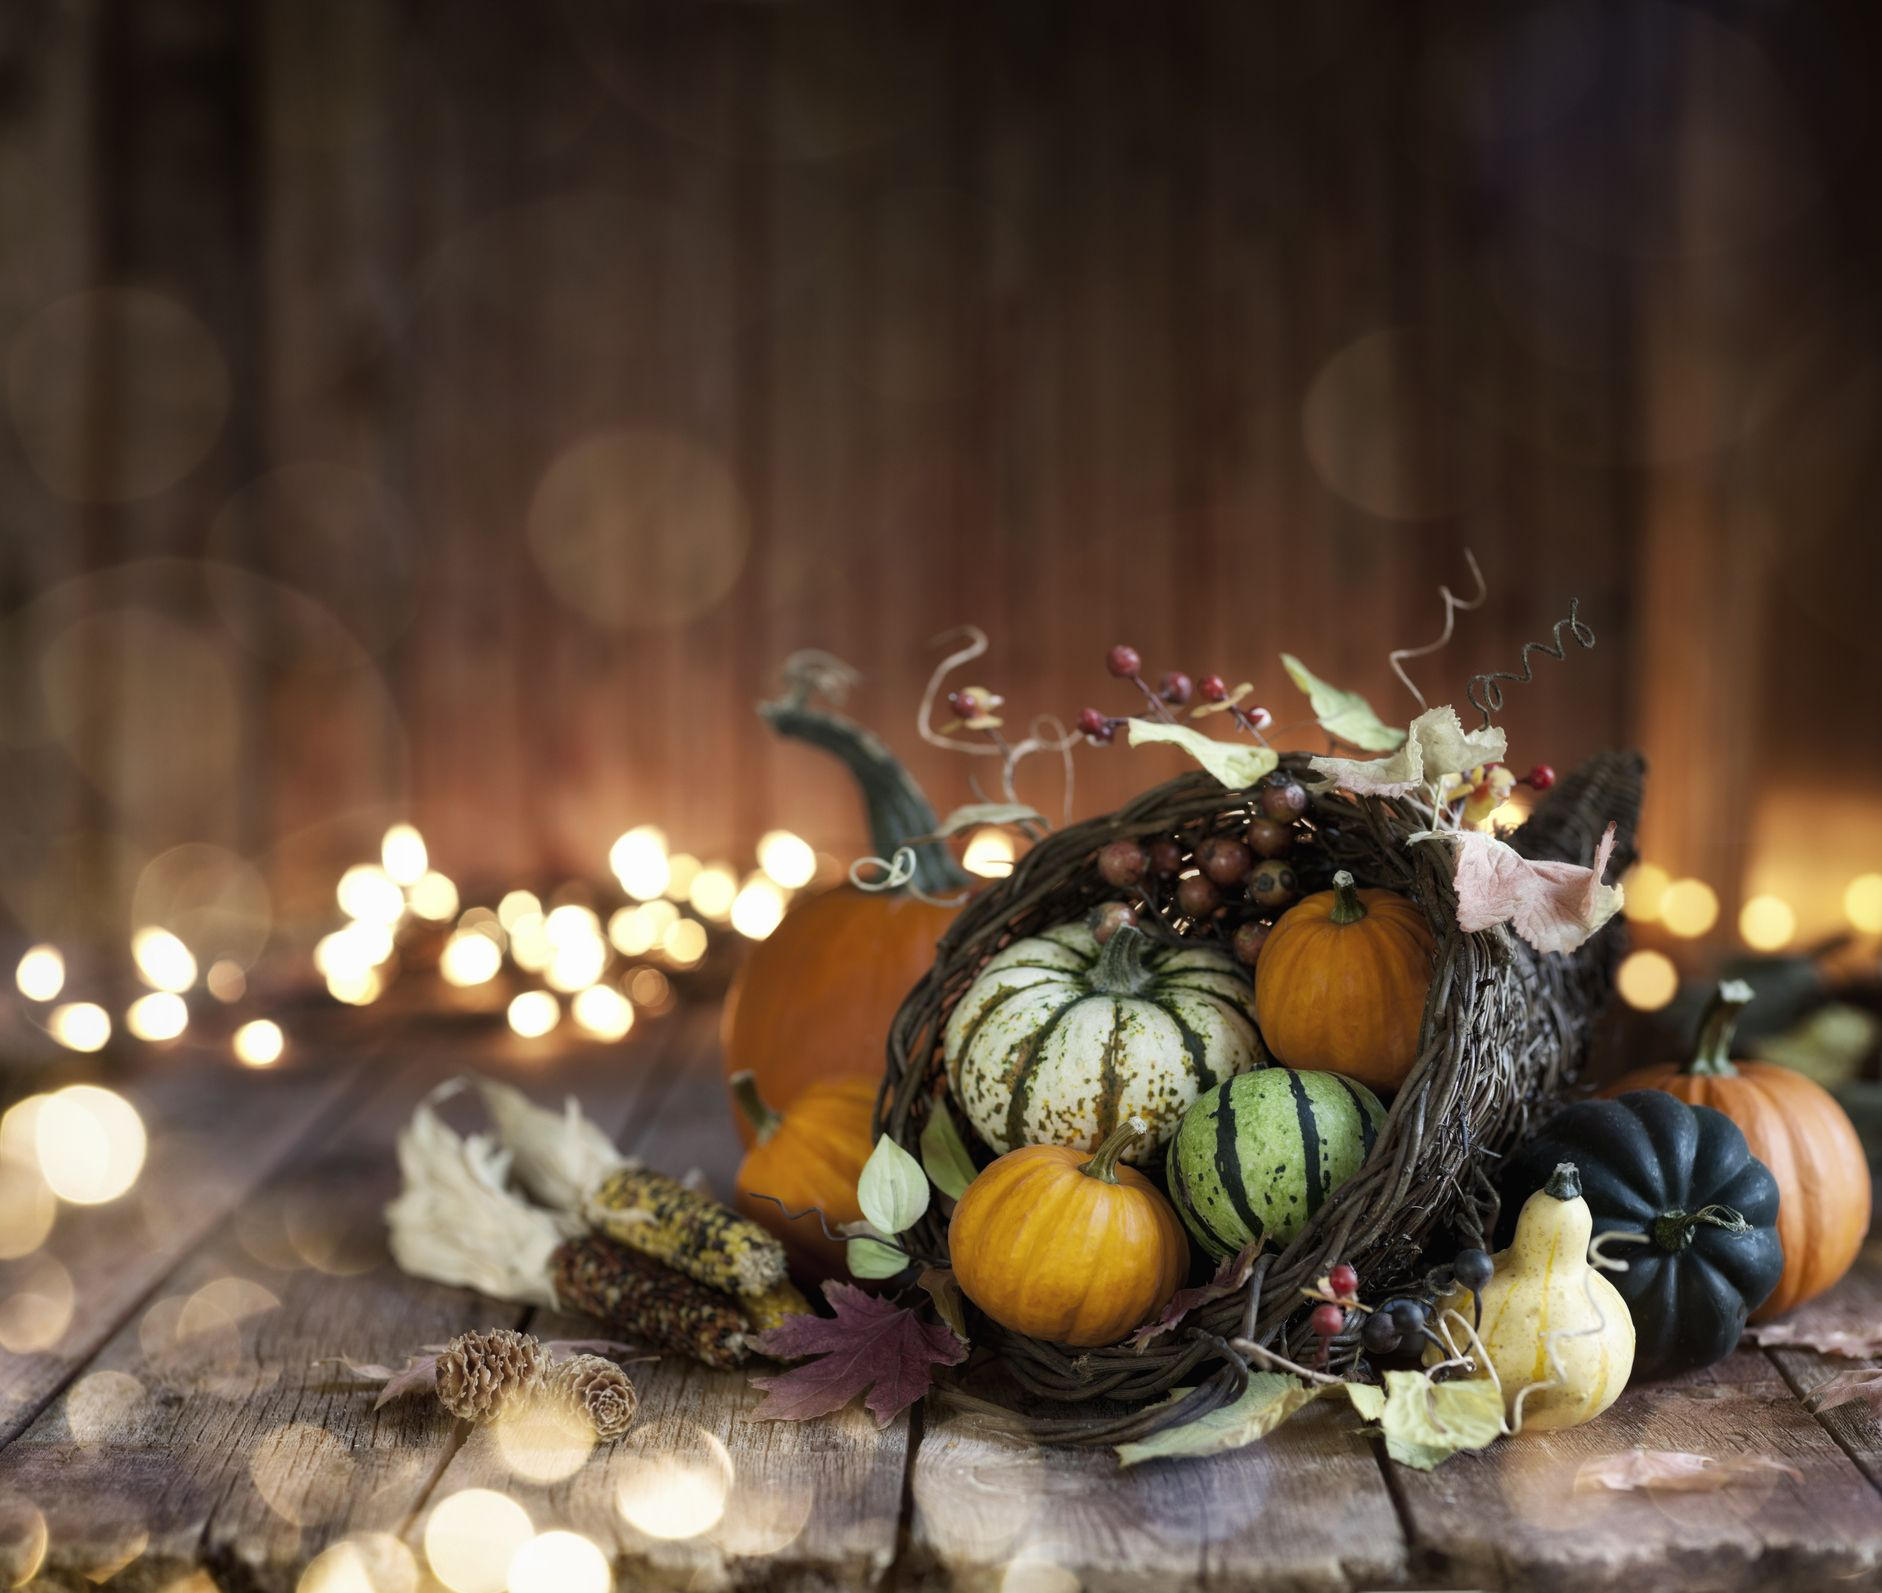 Thanksgiving Cornucopia Meaning Why Is The Cornucopia A Symbol Of Thanksgiving